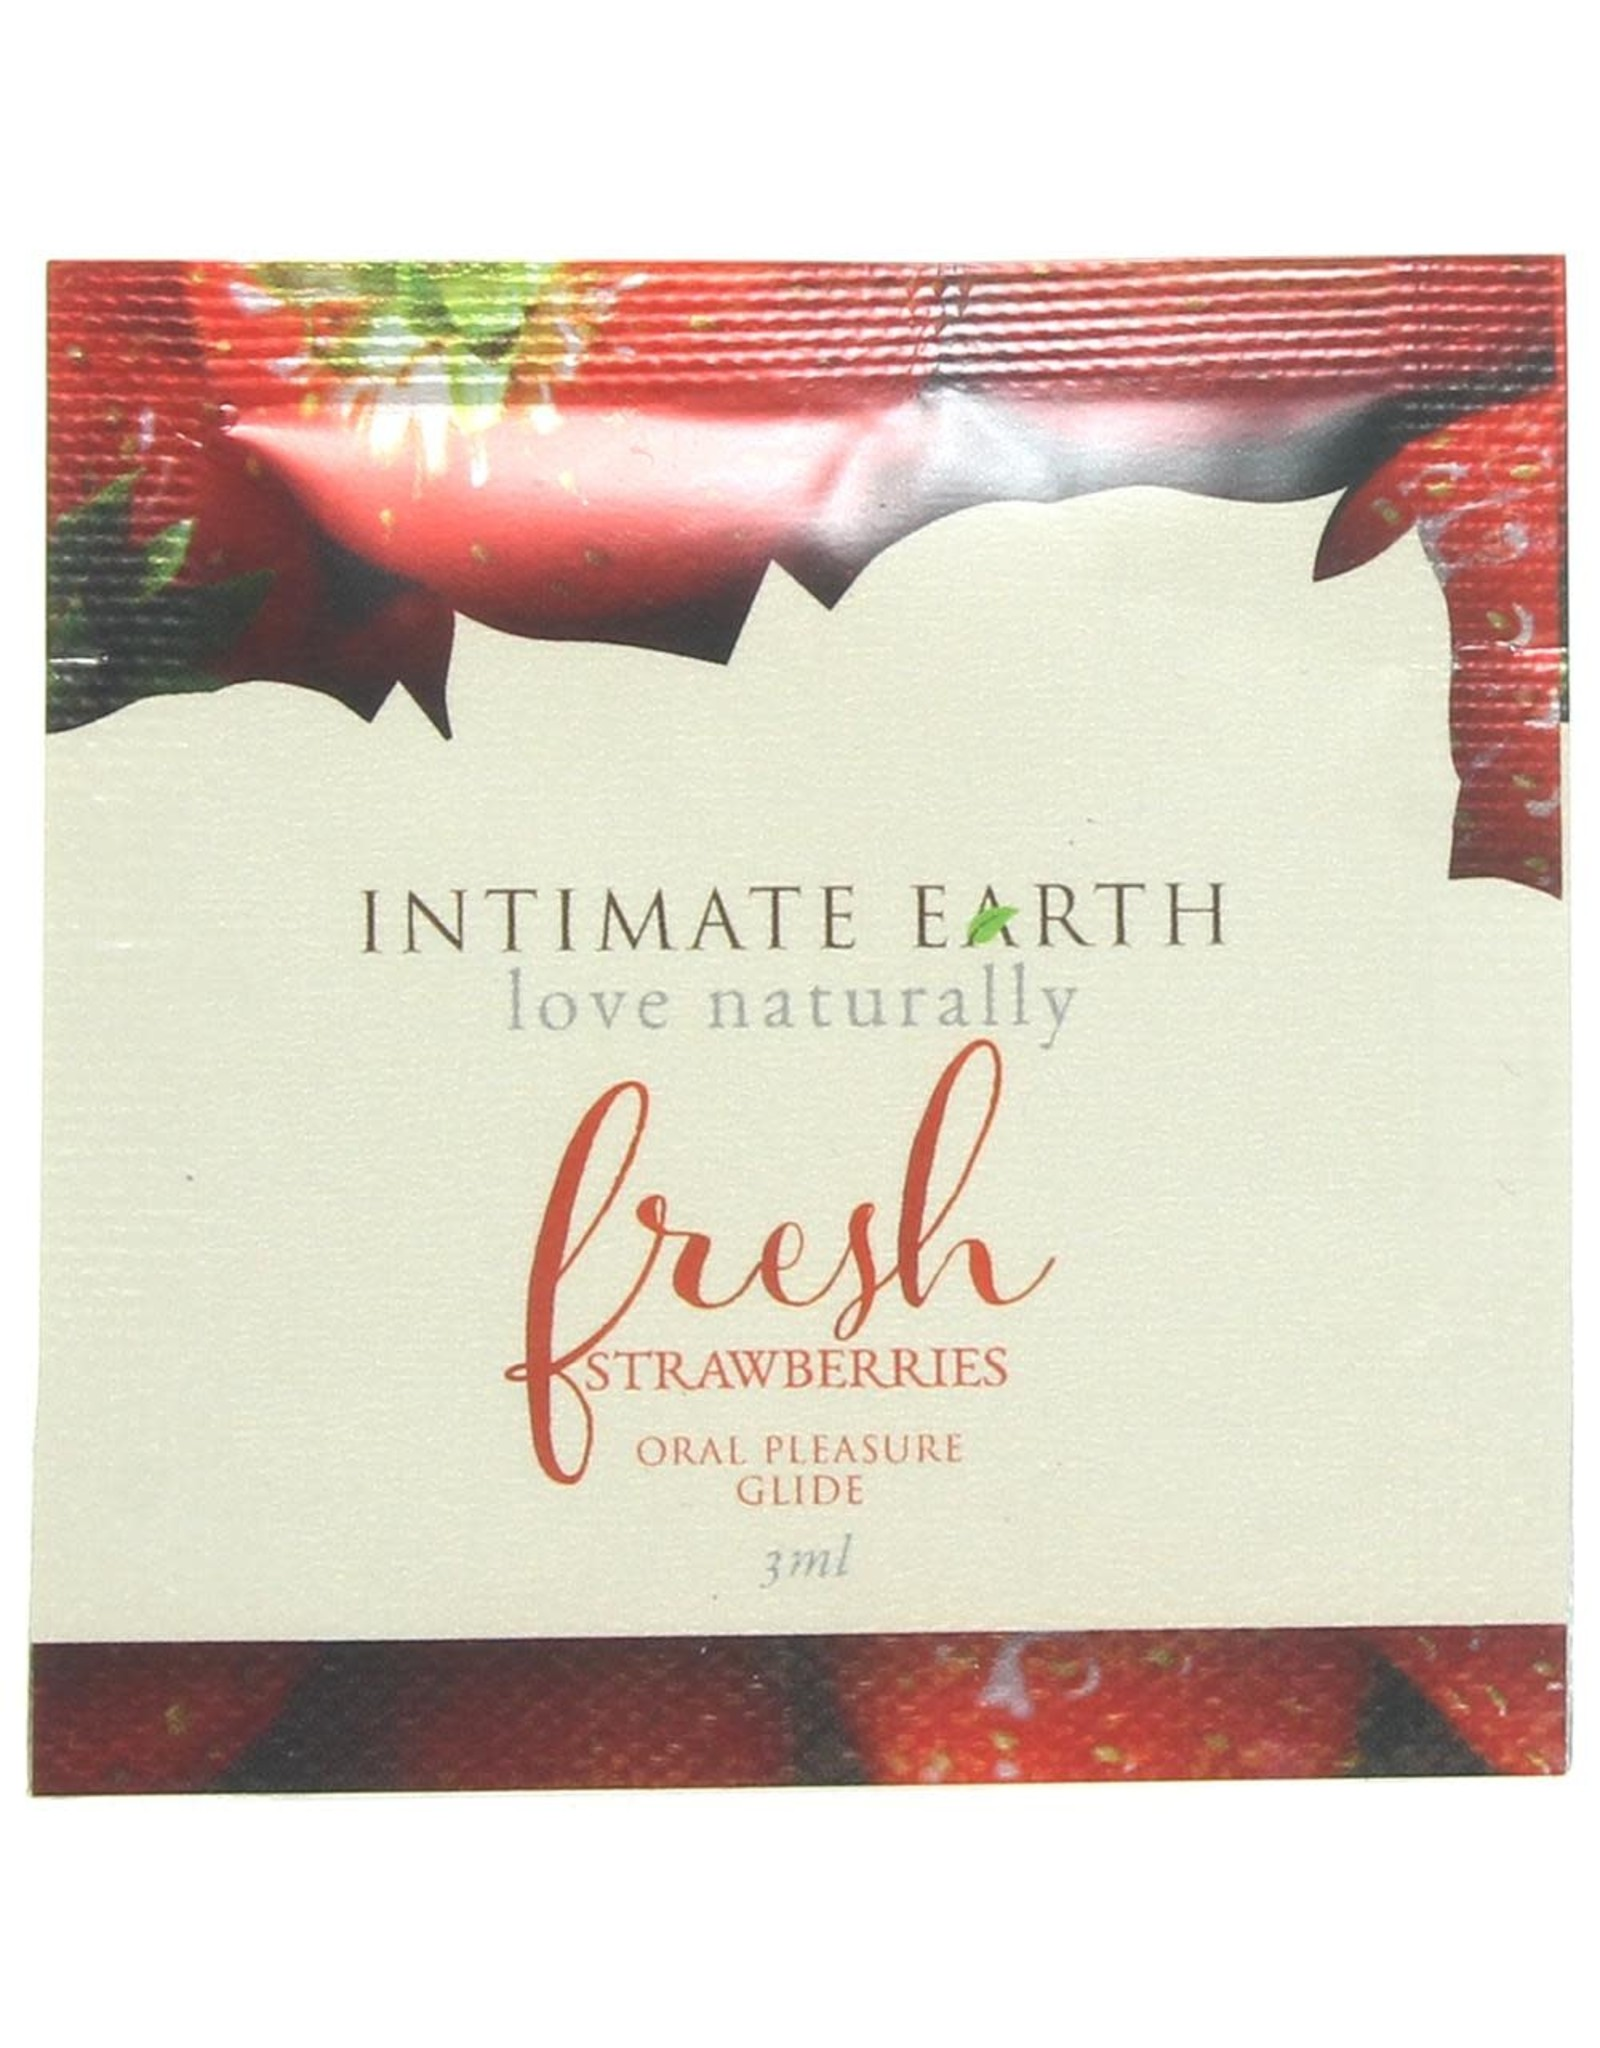 INTIMATE EARTH - ORAL PLEASURE GLIDE - FRESH STRAWBERRIES - 3 ml